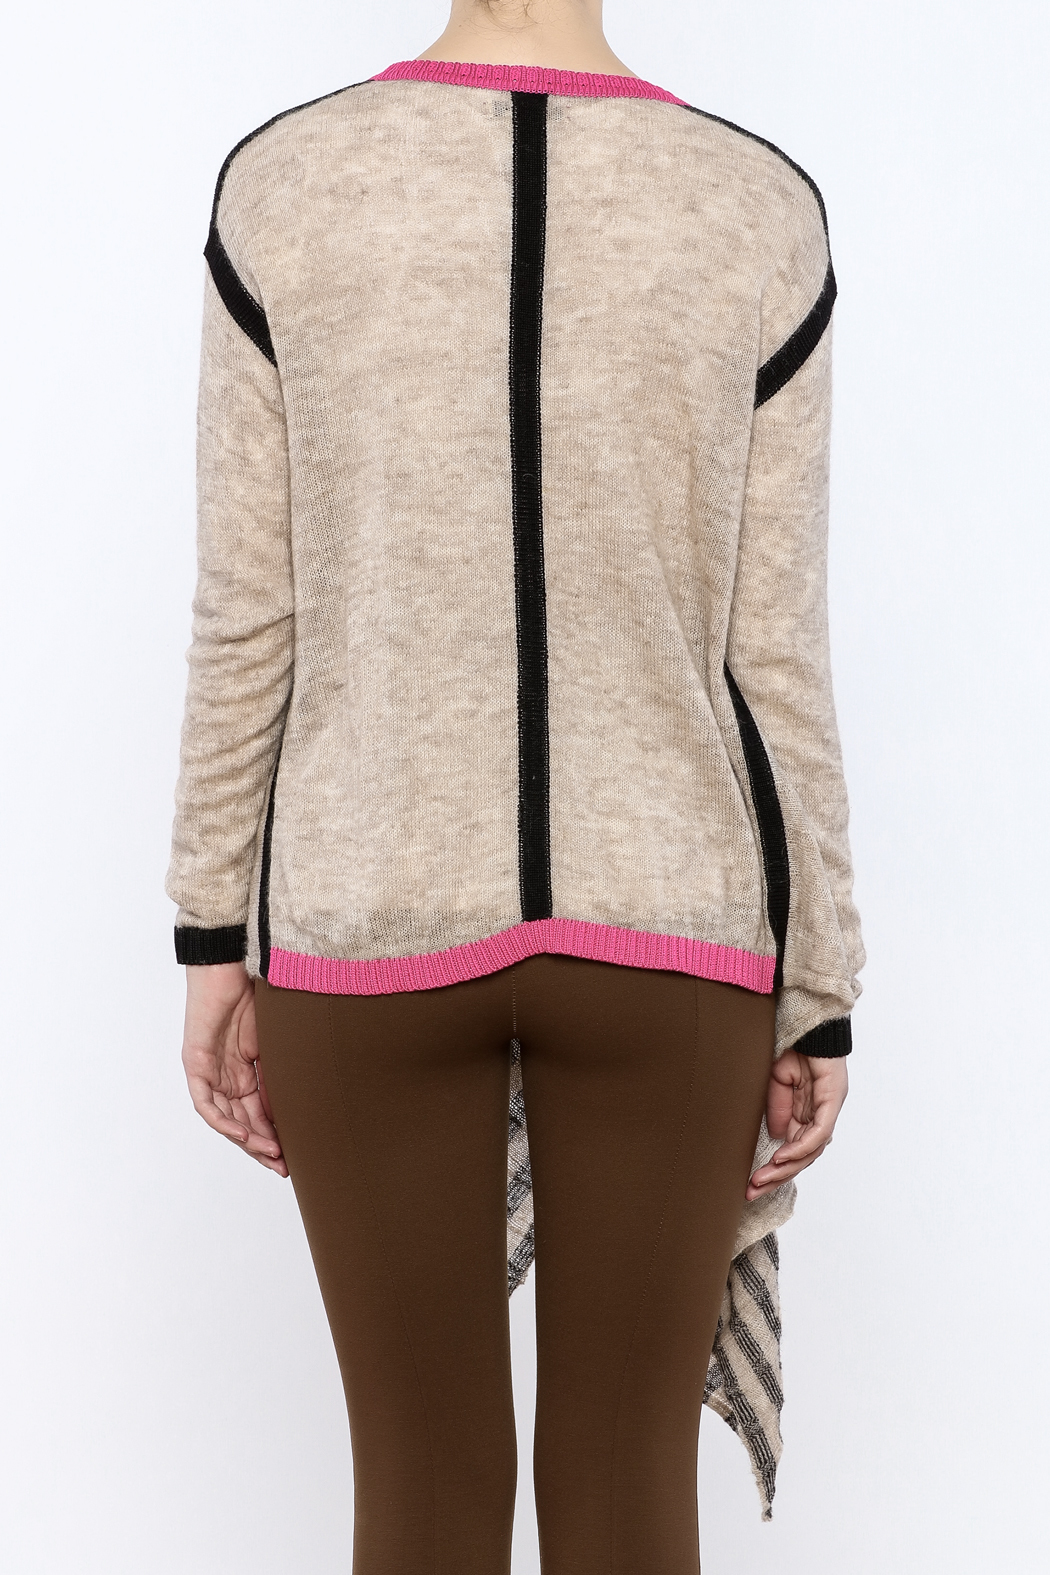 LABEL + thread Colorblock Cardigan - Back Cropped Image